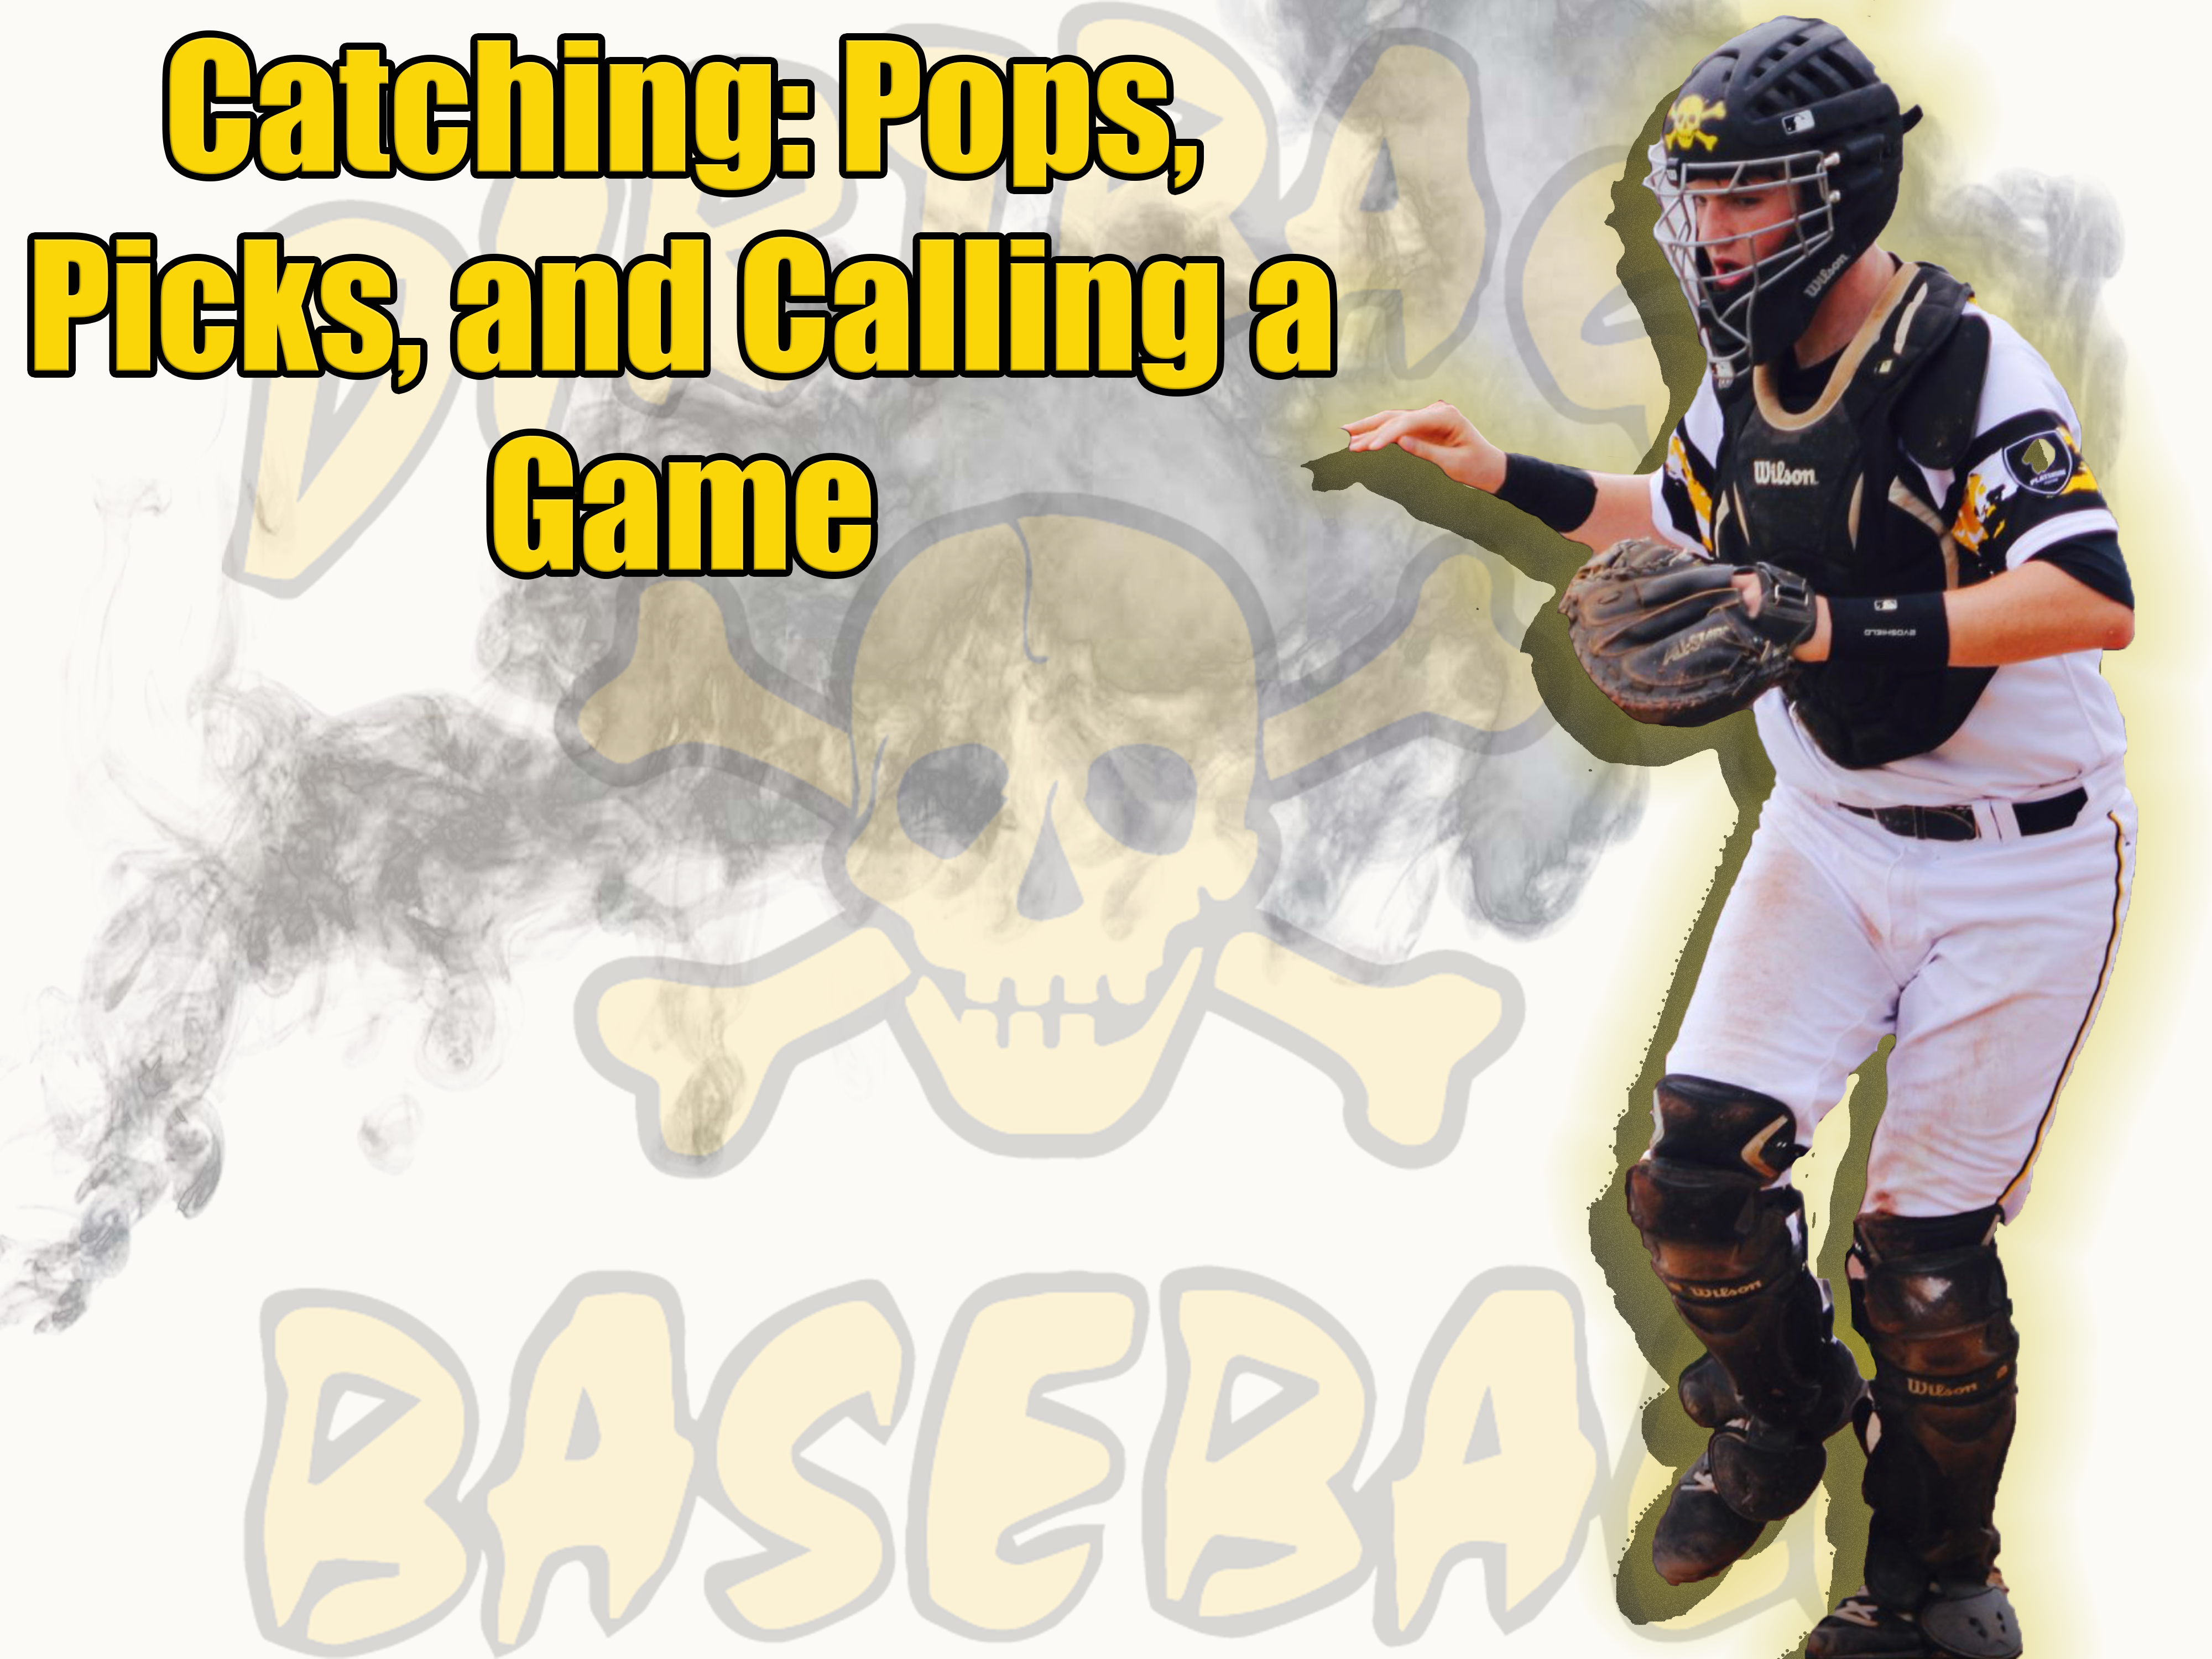 CATCHING (POPS, PICKS & CALLING A GAME)